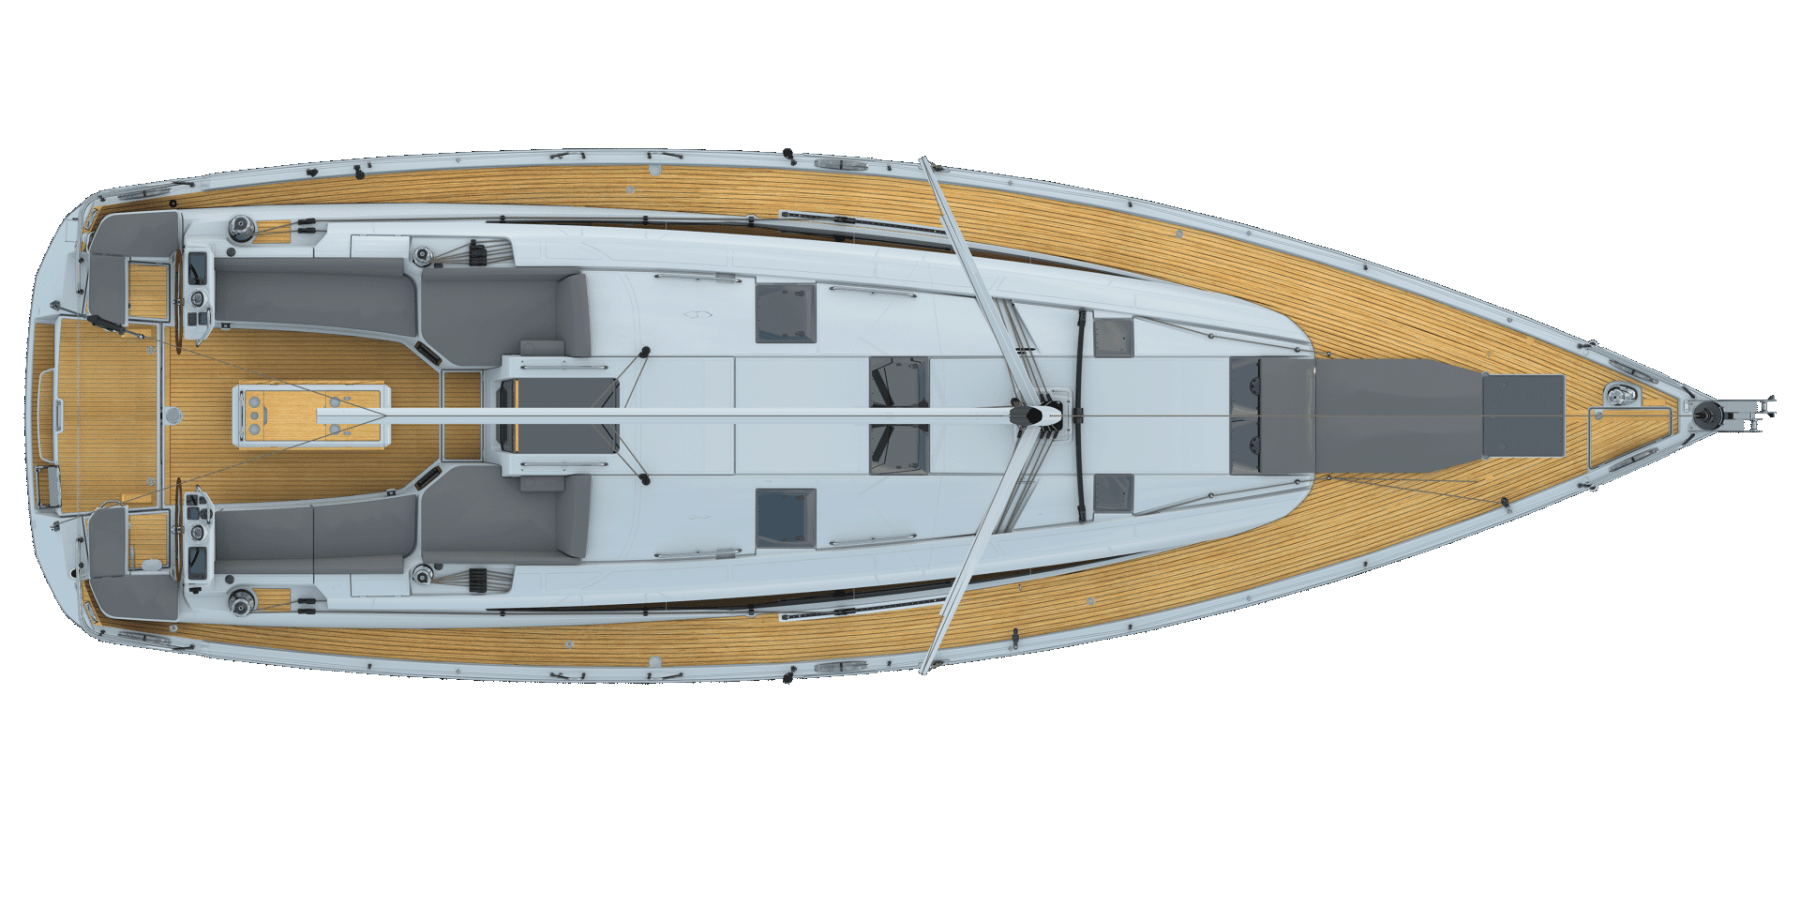 Jeanneau-51-layout-2-charter-ownership-yacht